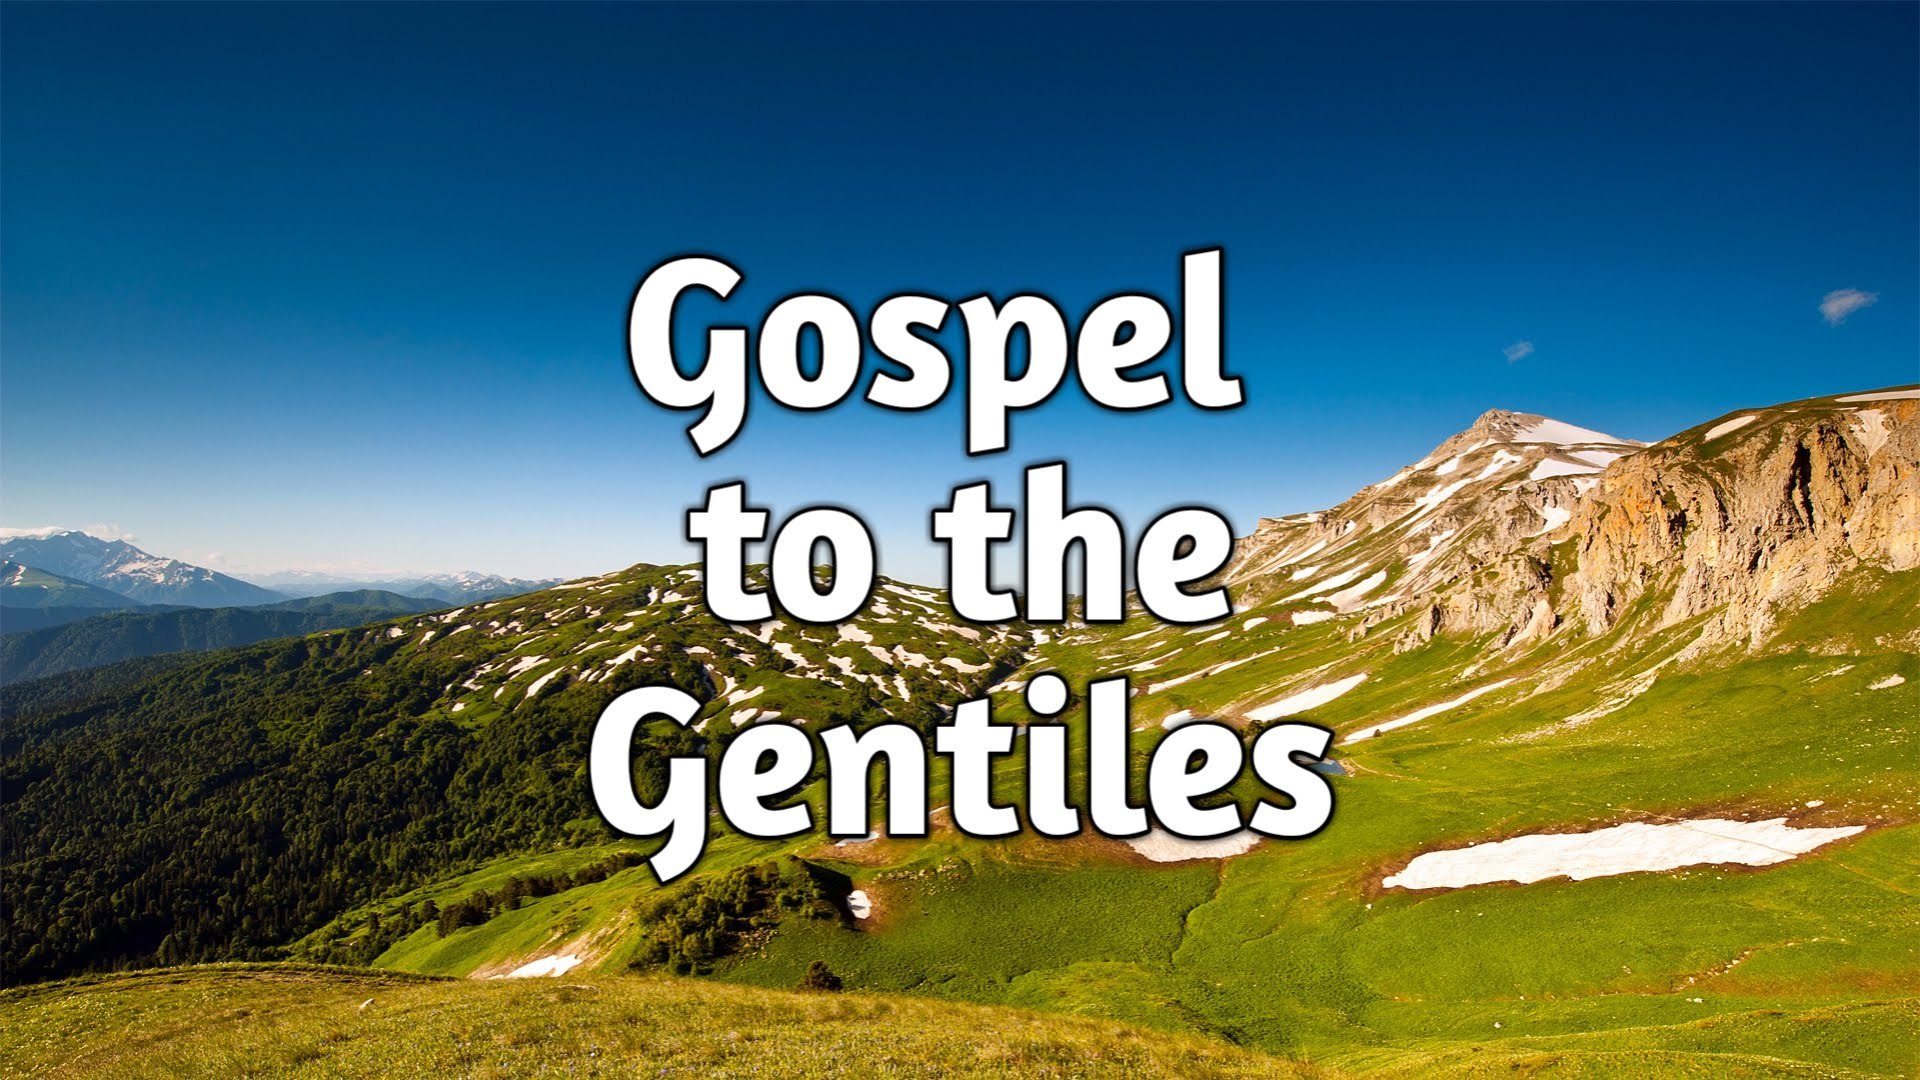 Gospel to the Gentiles